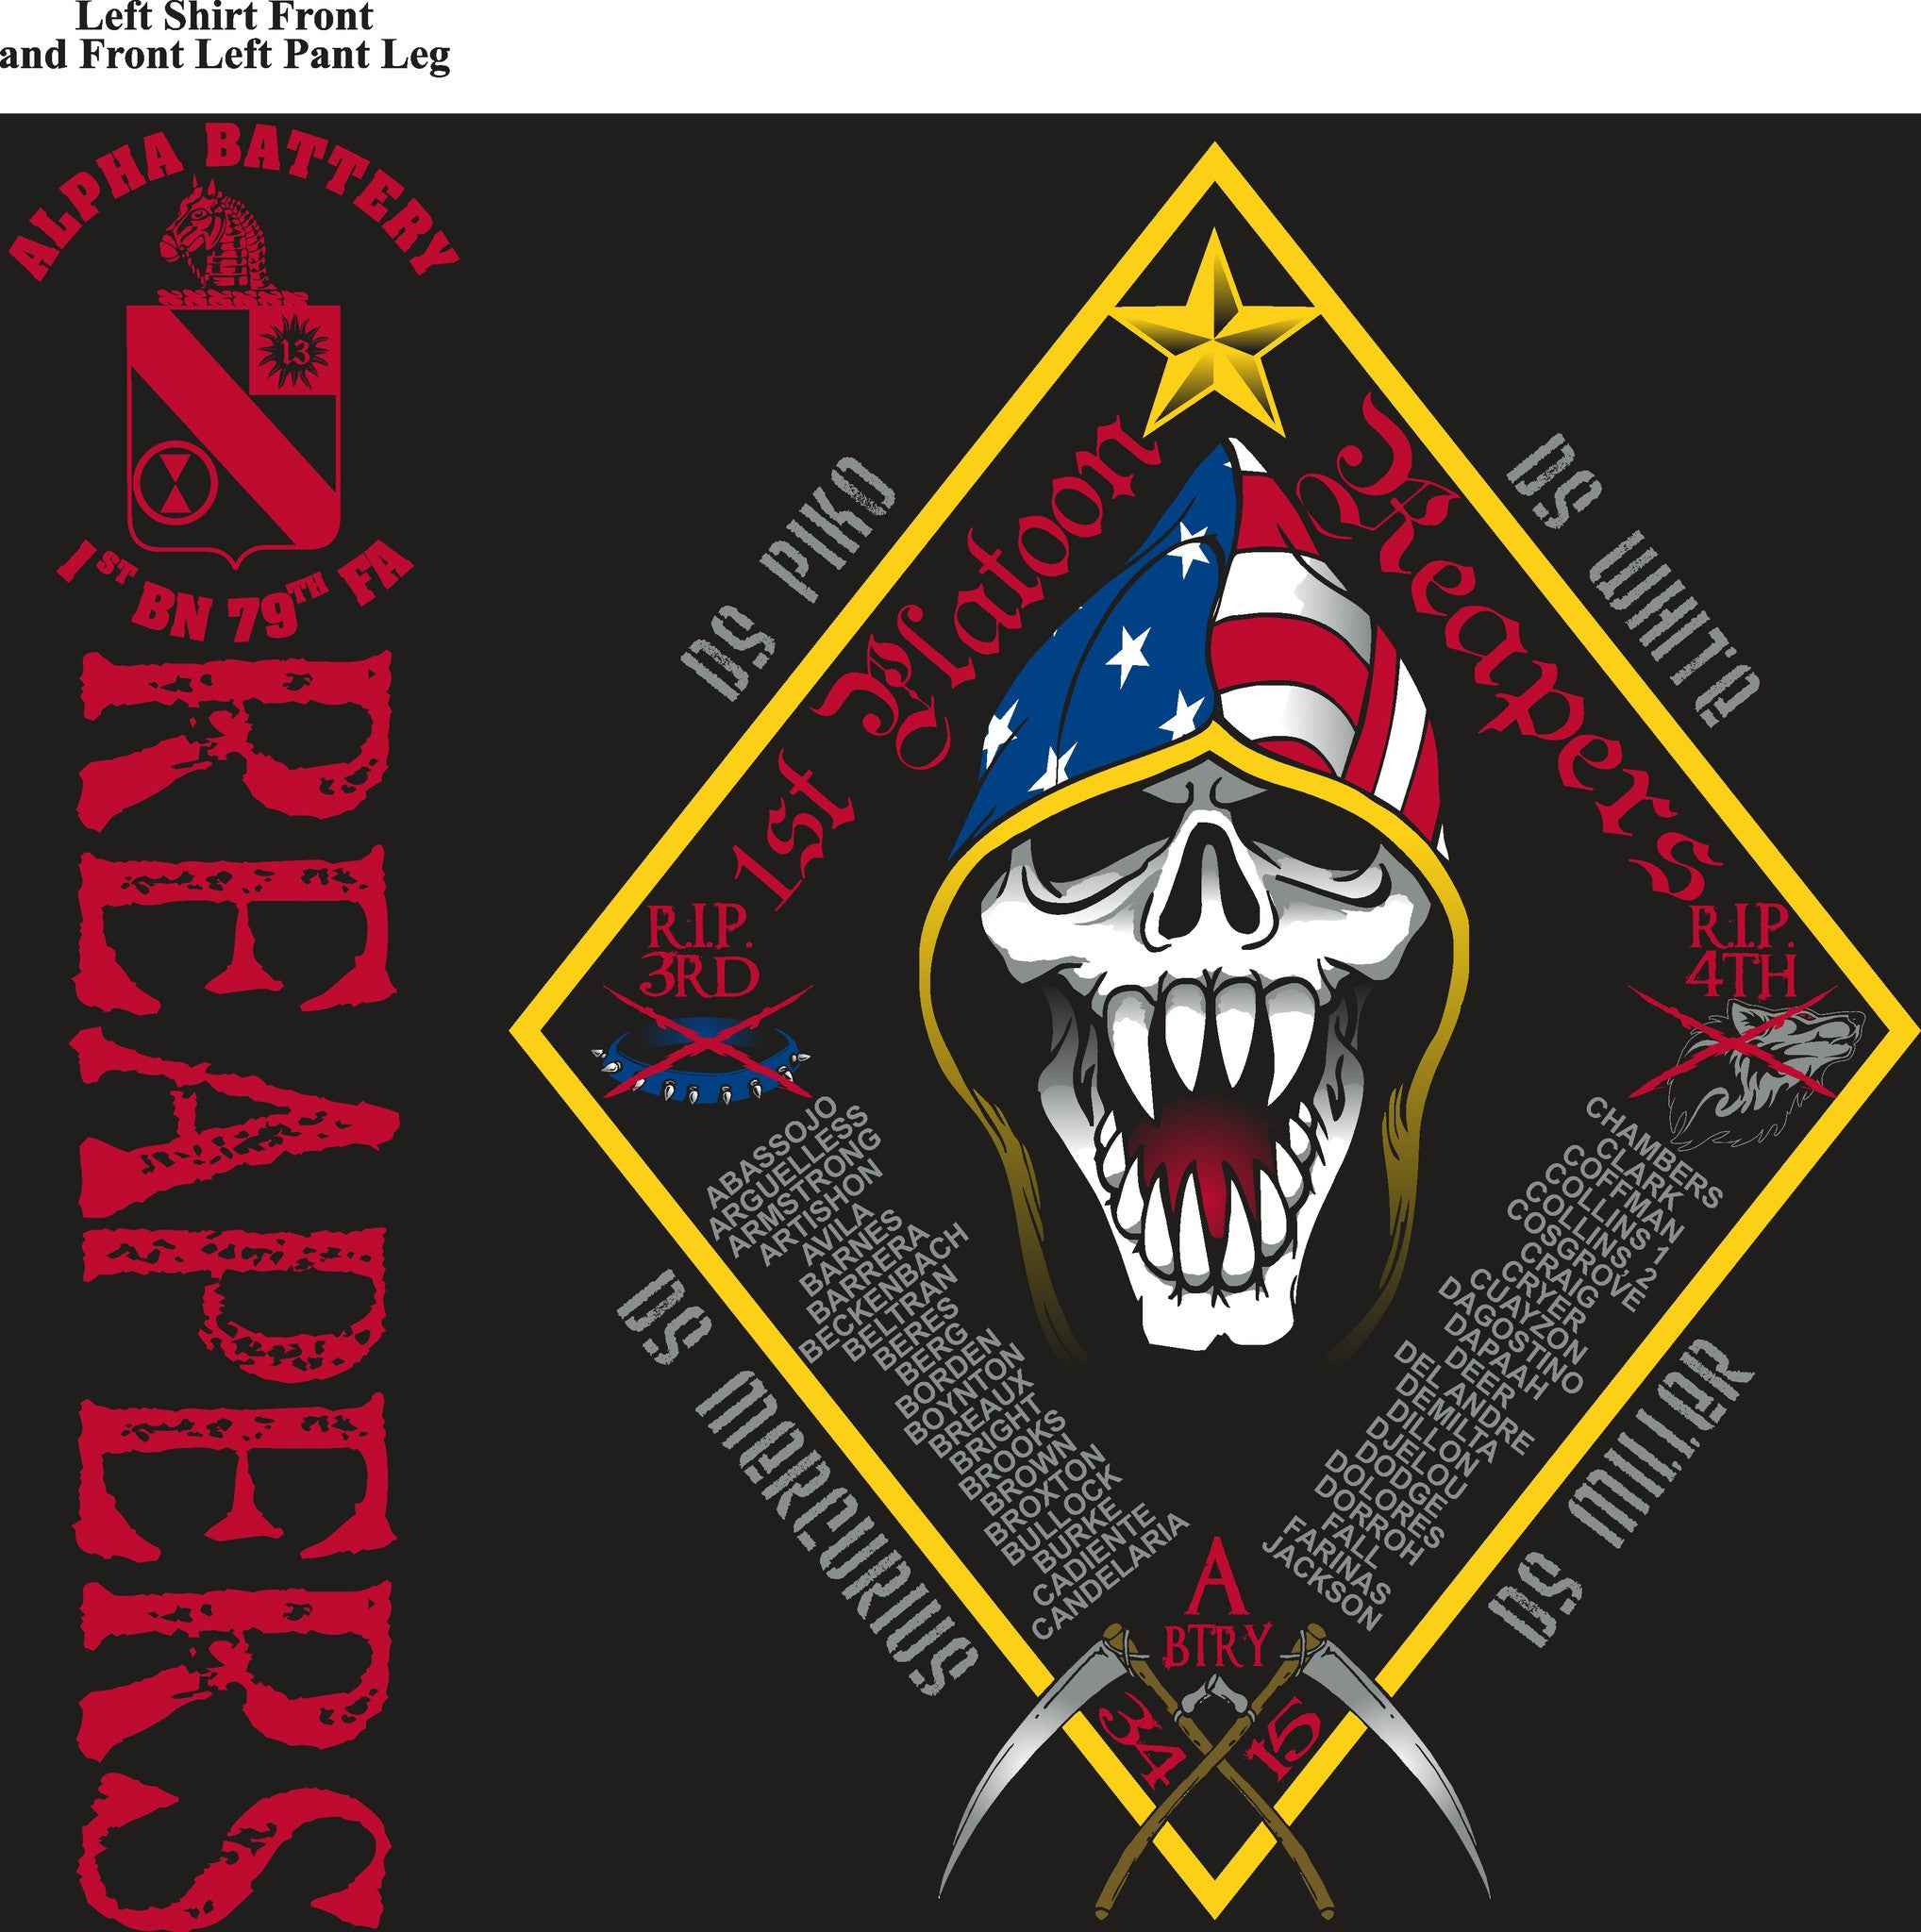 Platoon Shirts (digital) ALPHA 1st 79th REAPERS MAY 2015